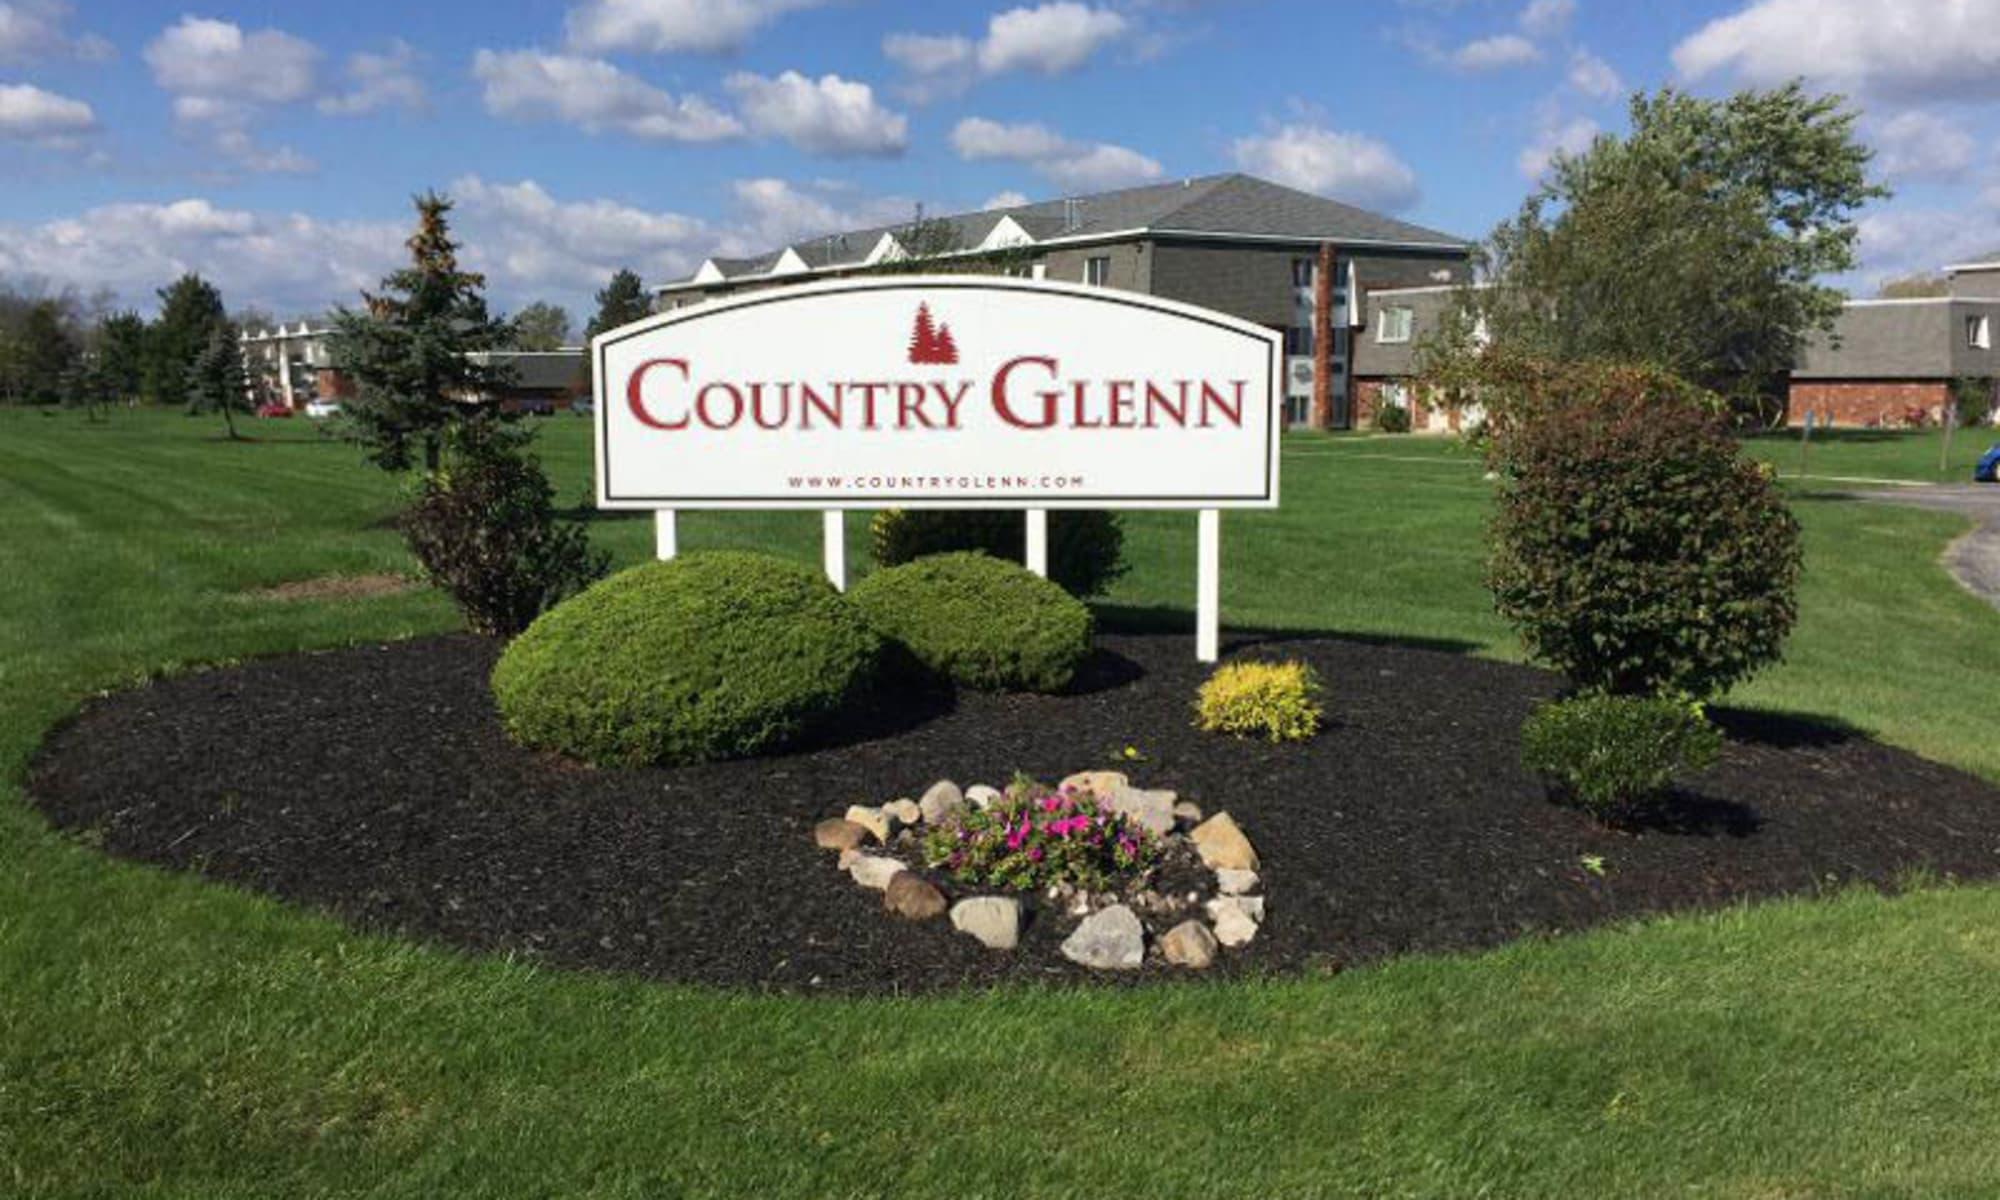 Apartments at Country Glenn in Grand Island, New York